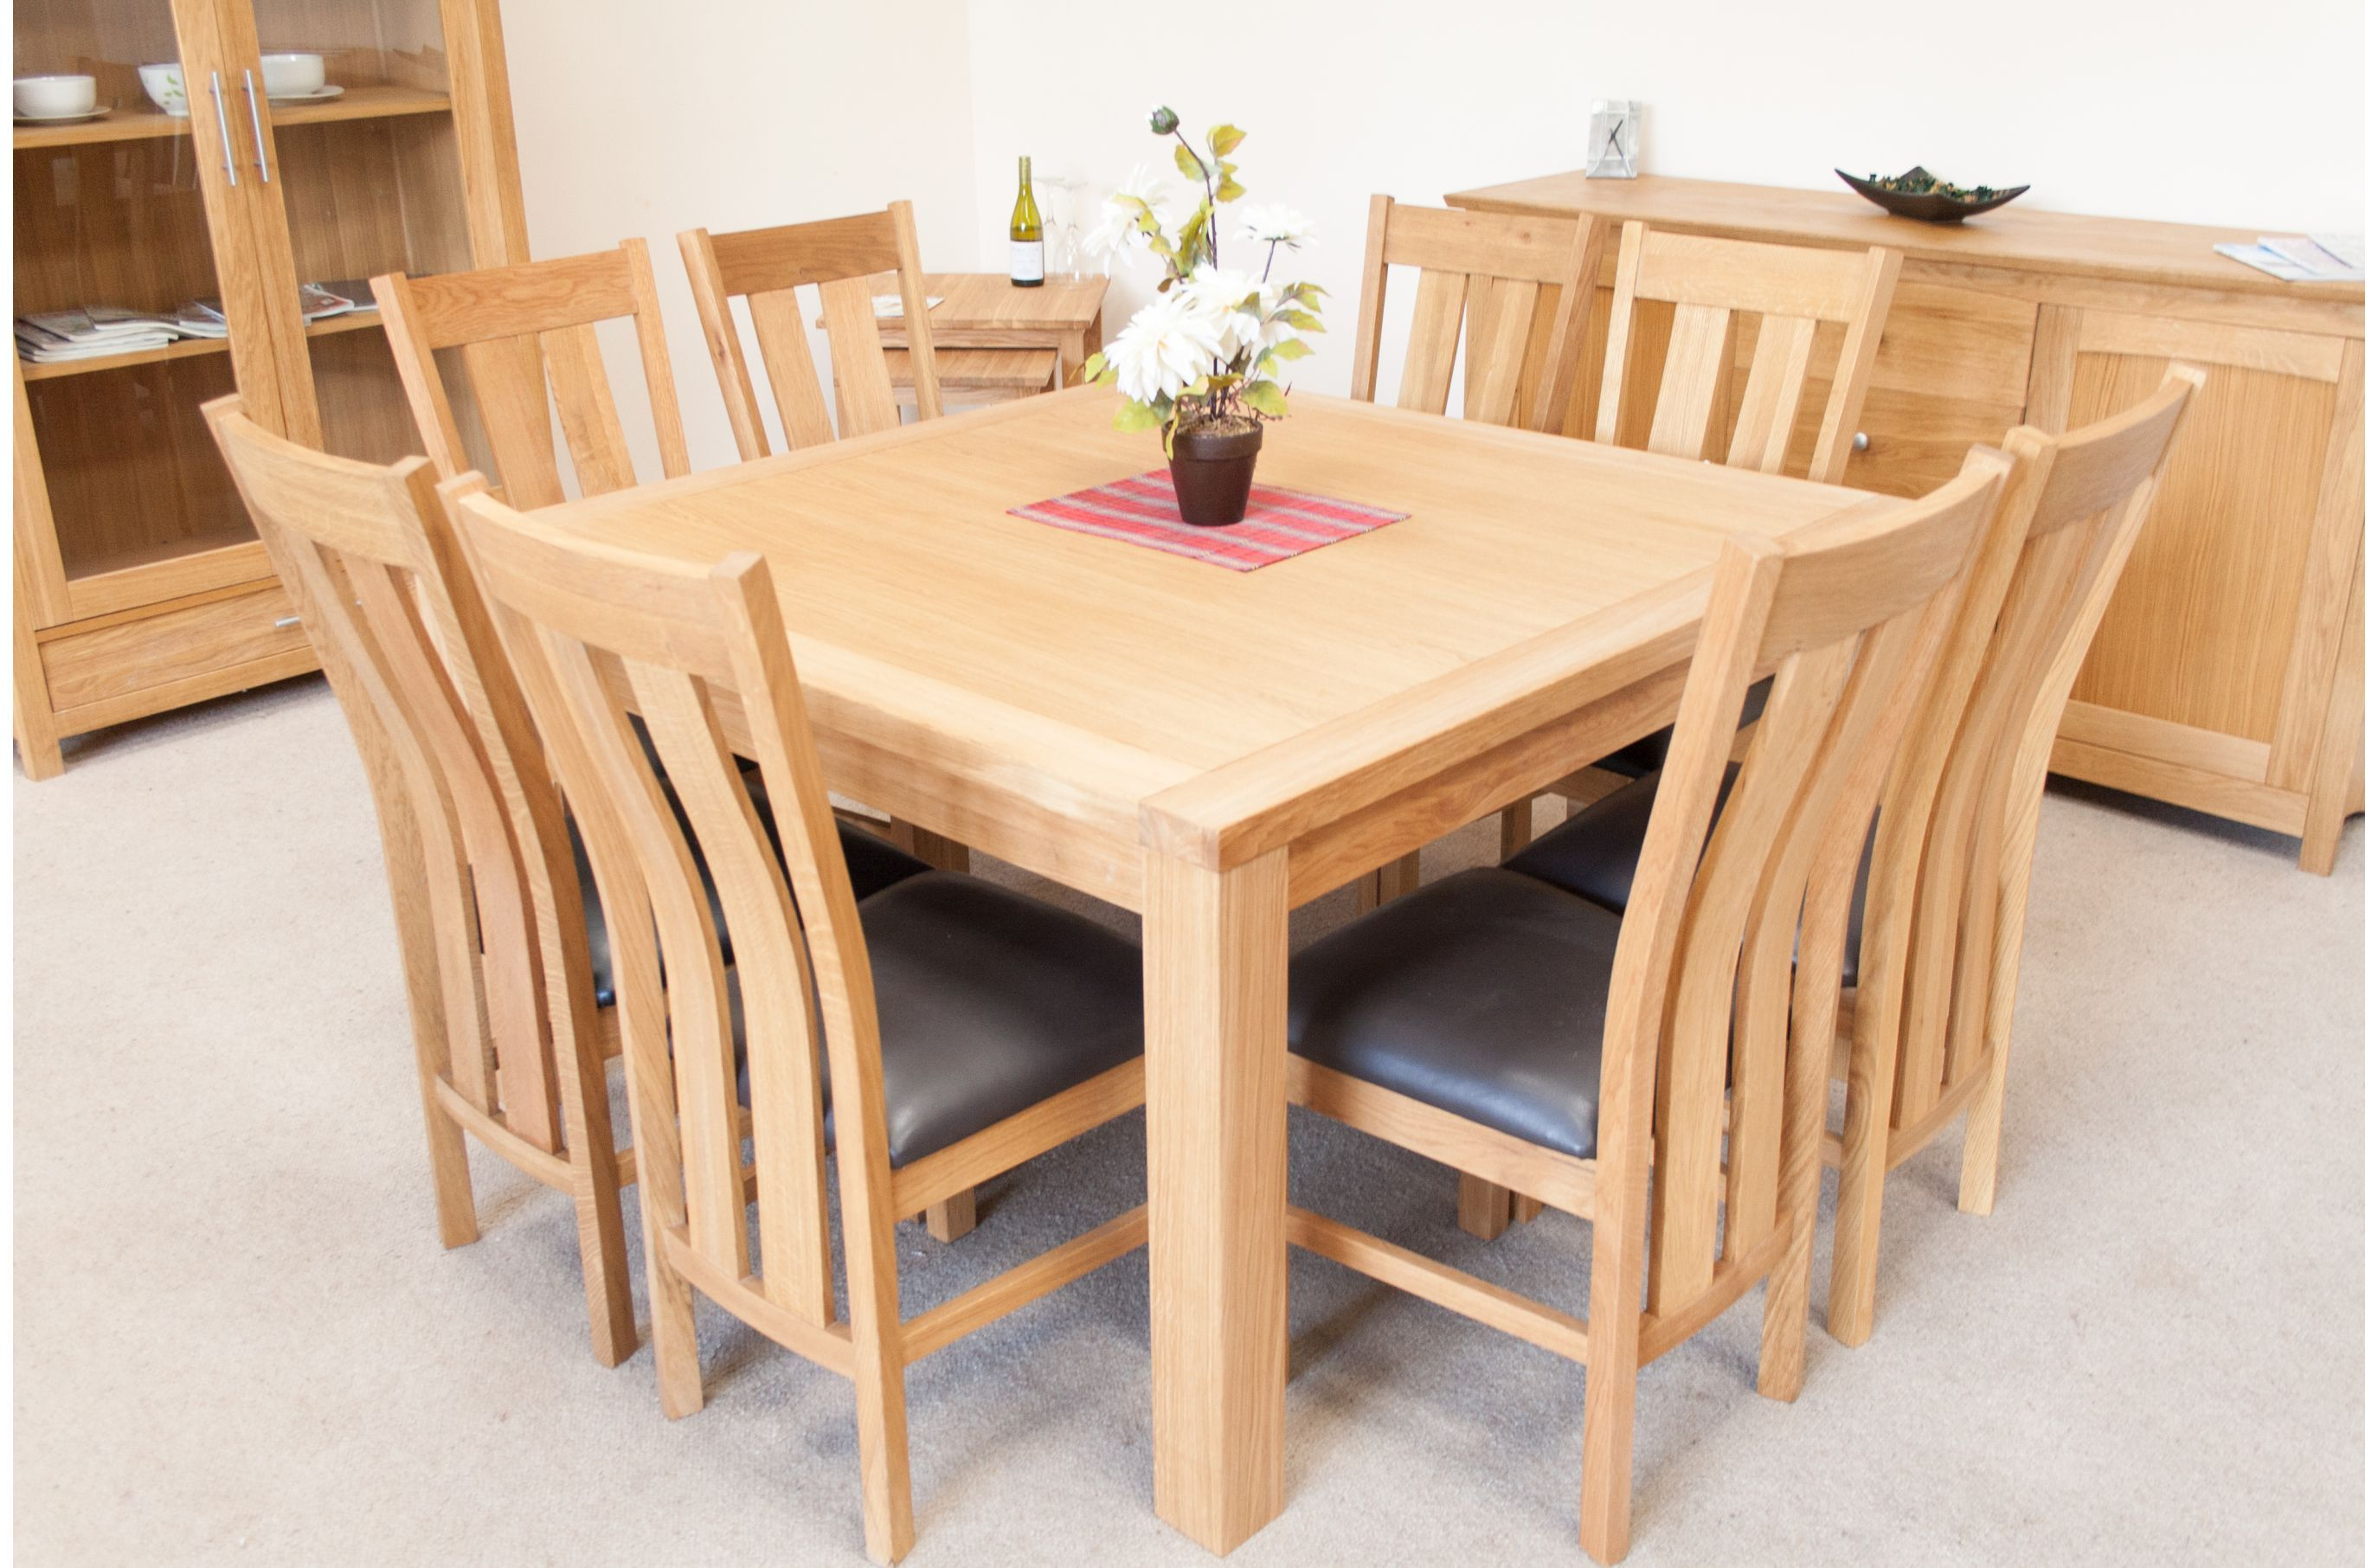 Minsk 130cm Large Square Oak Dining Table Seating 8 Square